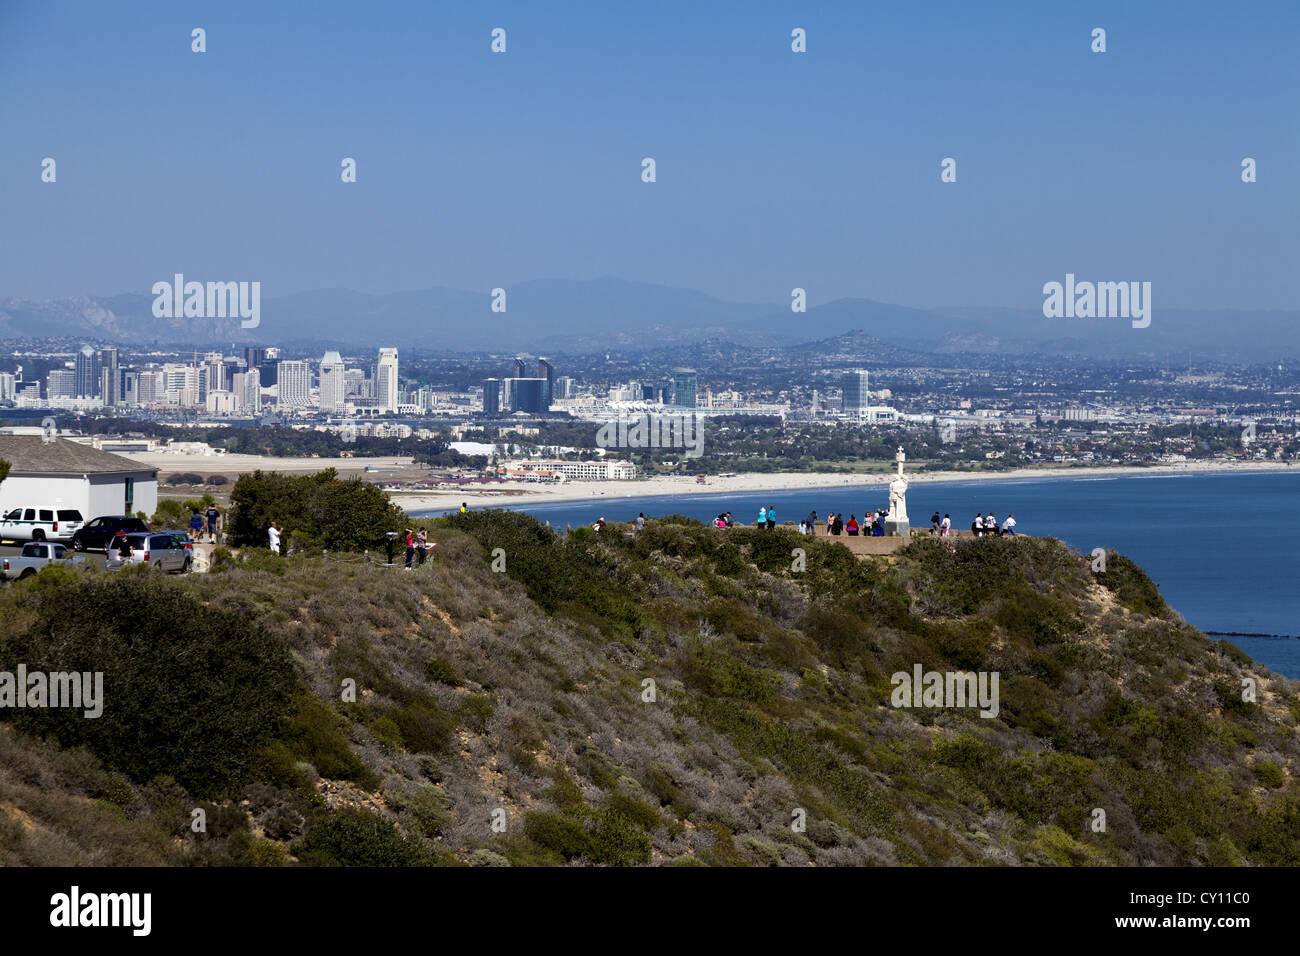 Cabrillo National Monument,  Point Loma peninsula with San Diego harbor and the city skyline in the background - Stock Image